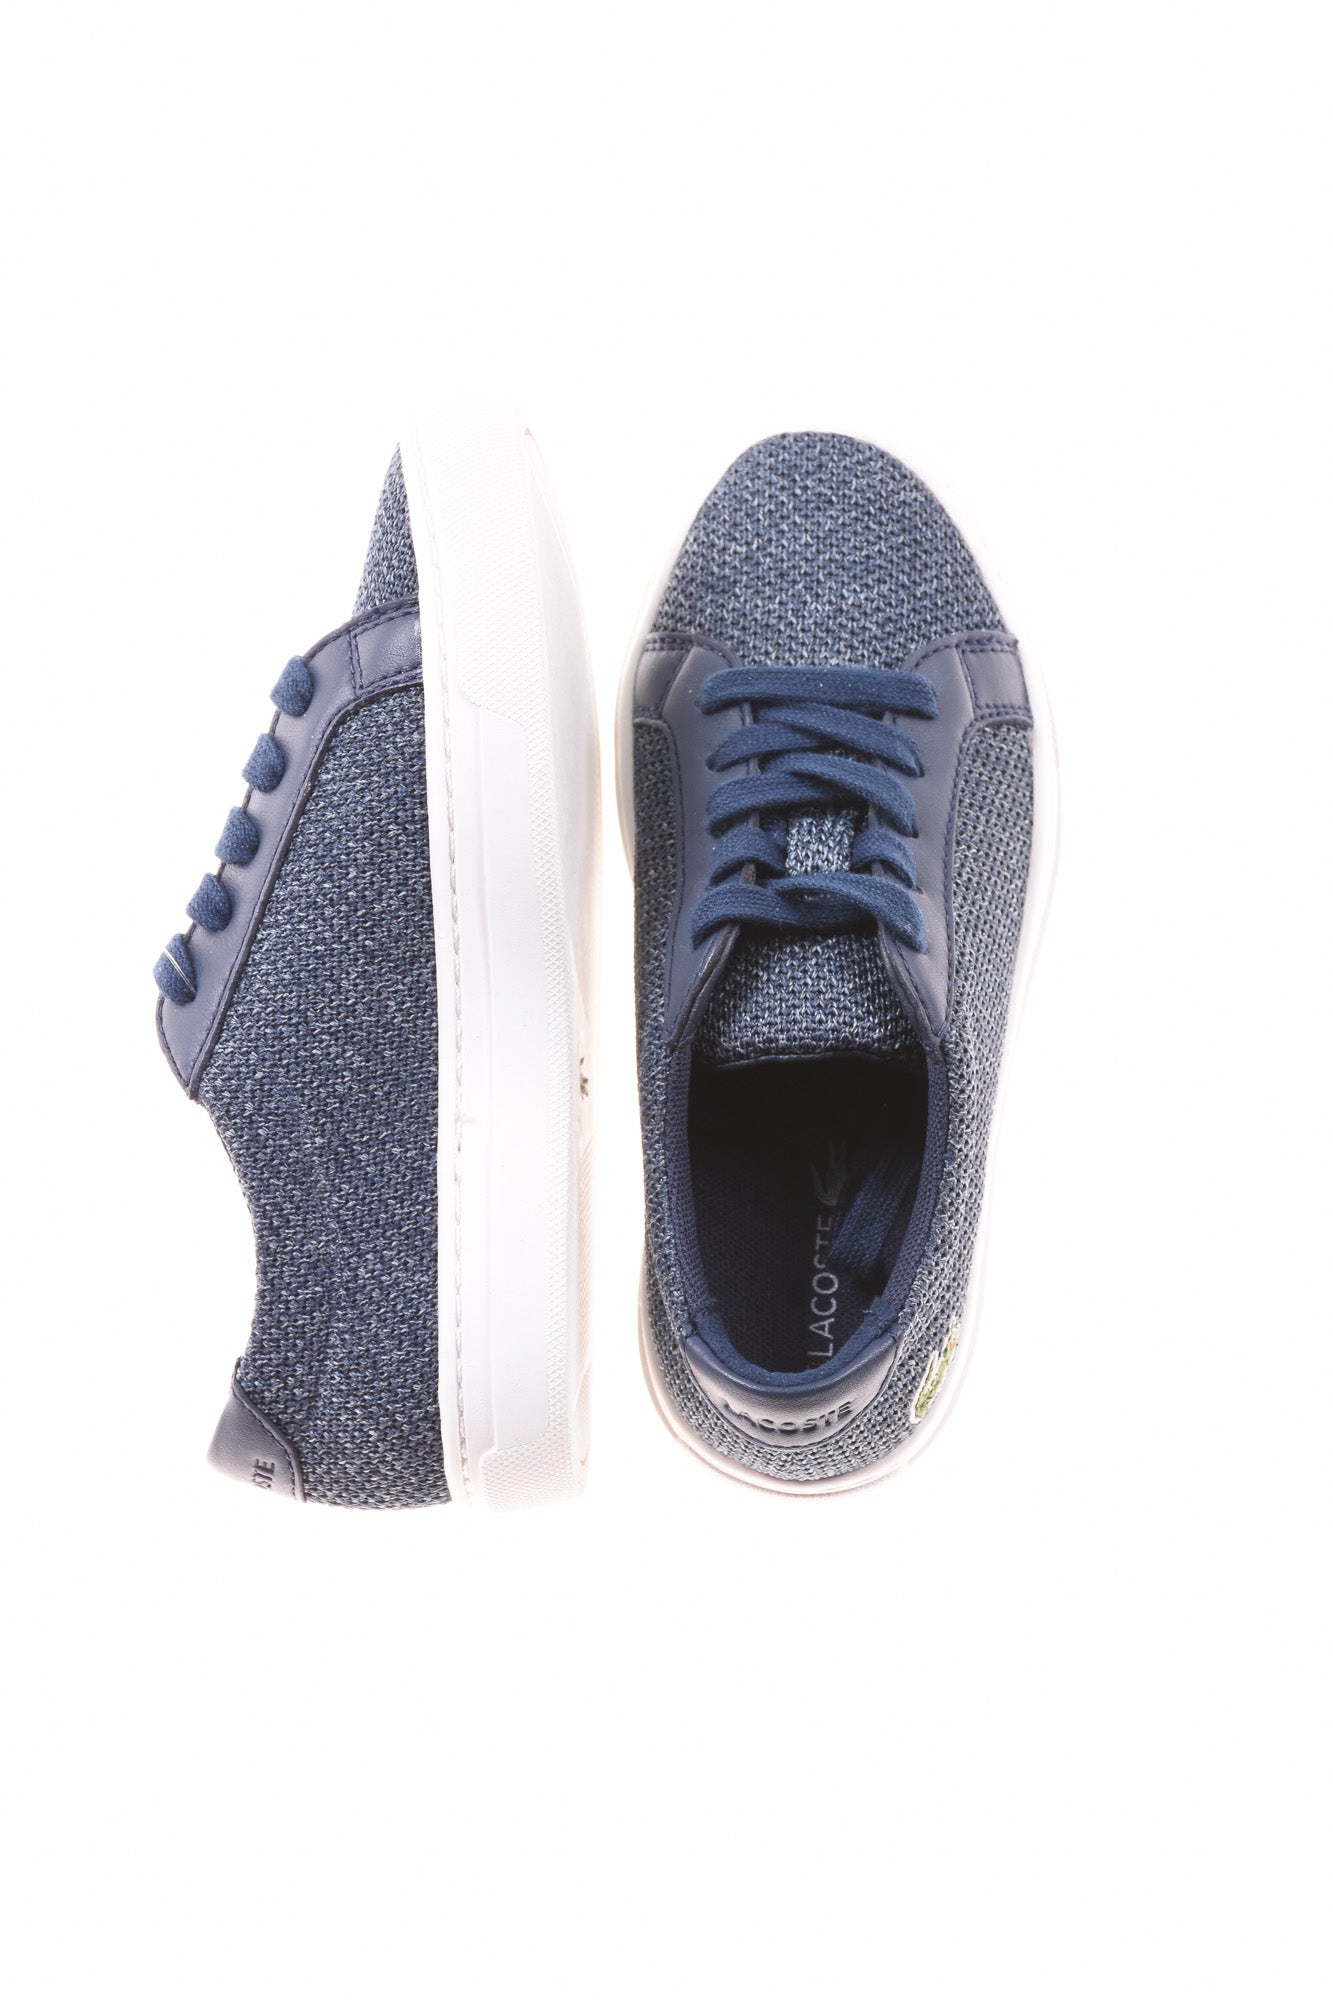 2fc34e152 USED Lacoste Toddler Boy s Shoes 12 Blue - Village Discount Outlet